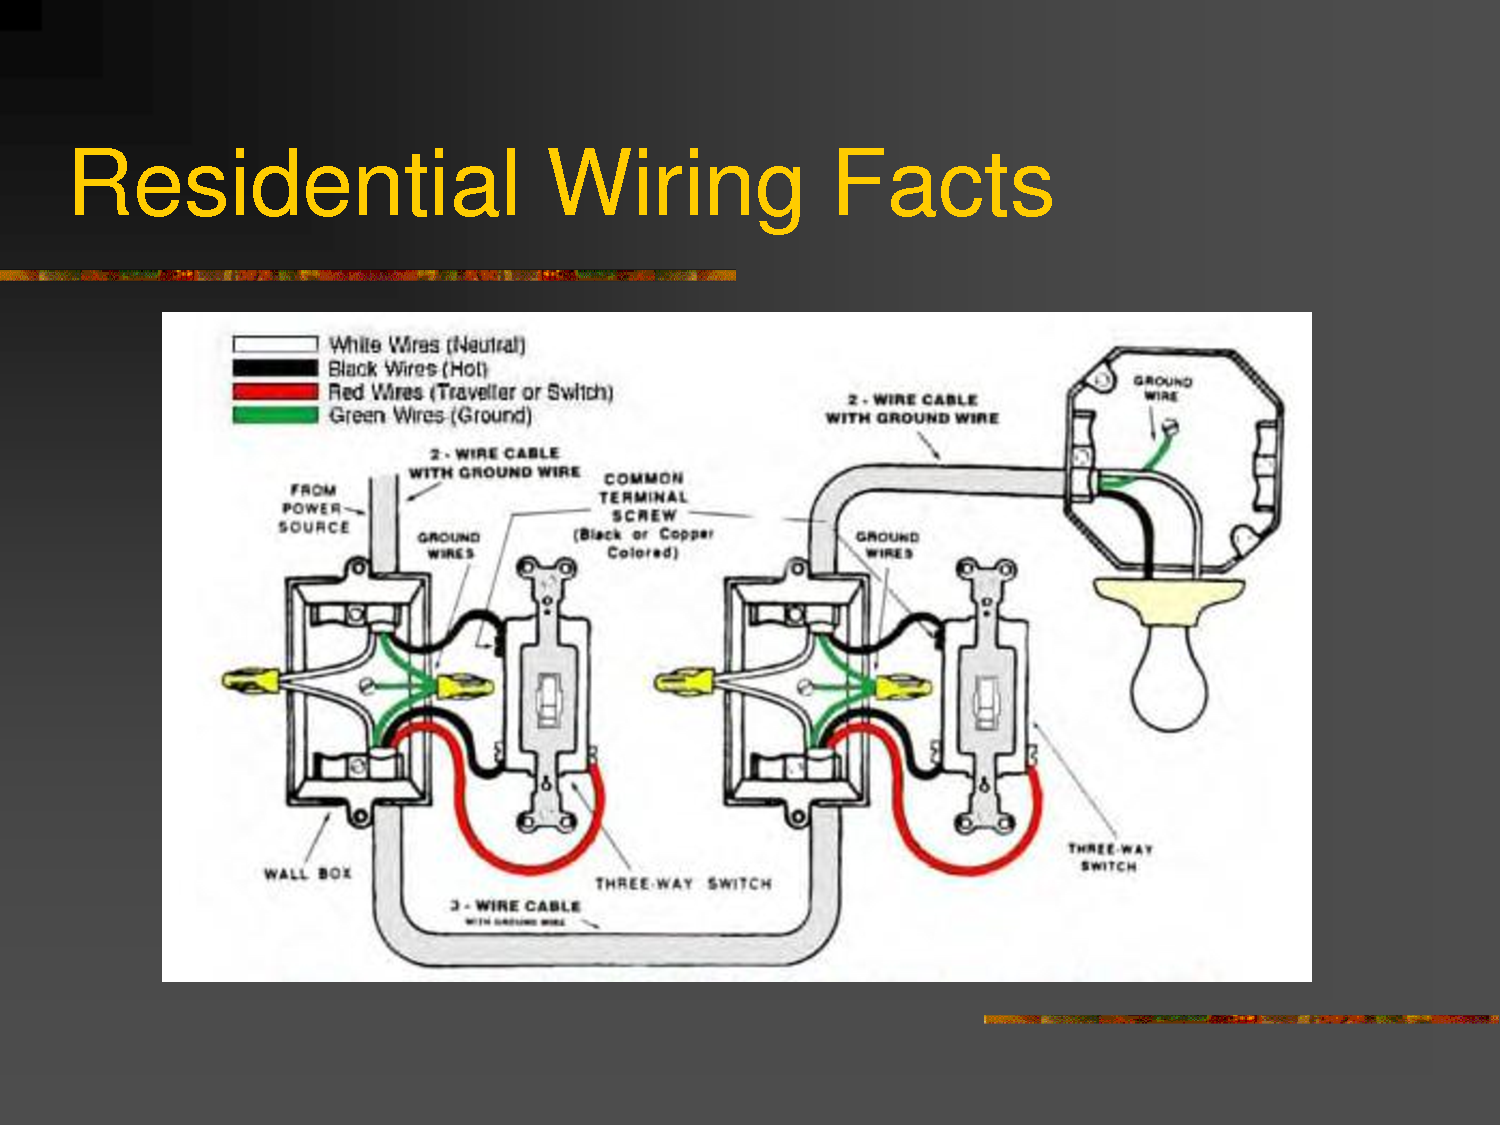 Home Electrical Diagrams Layouts Moreover Electrical Ground Wire To on